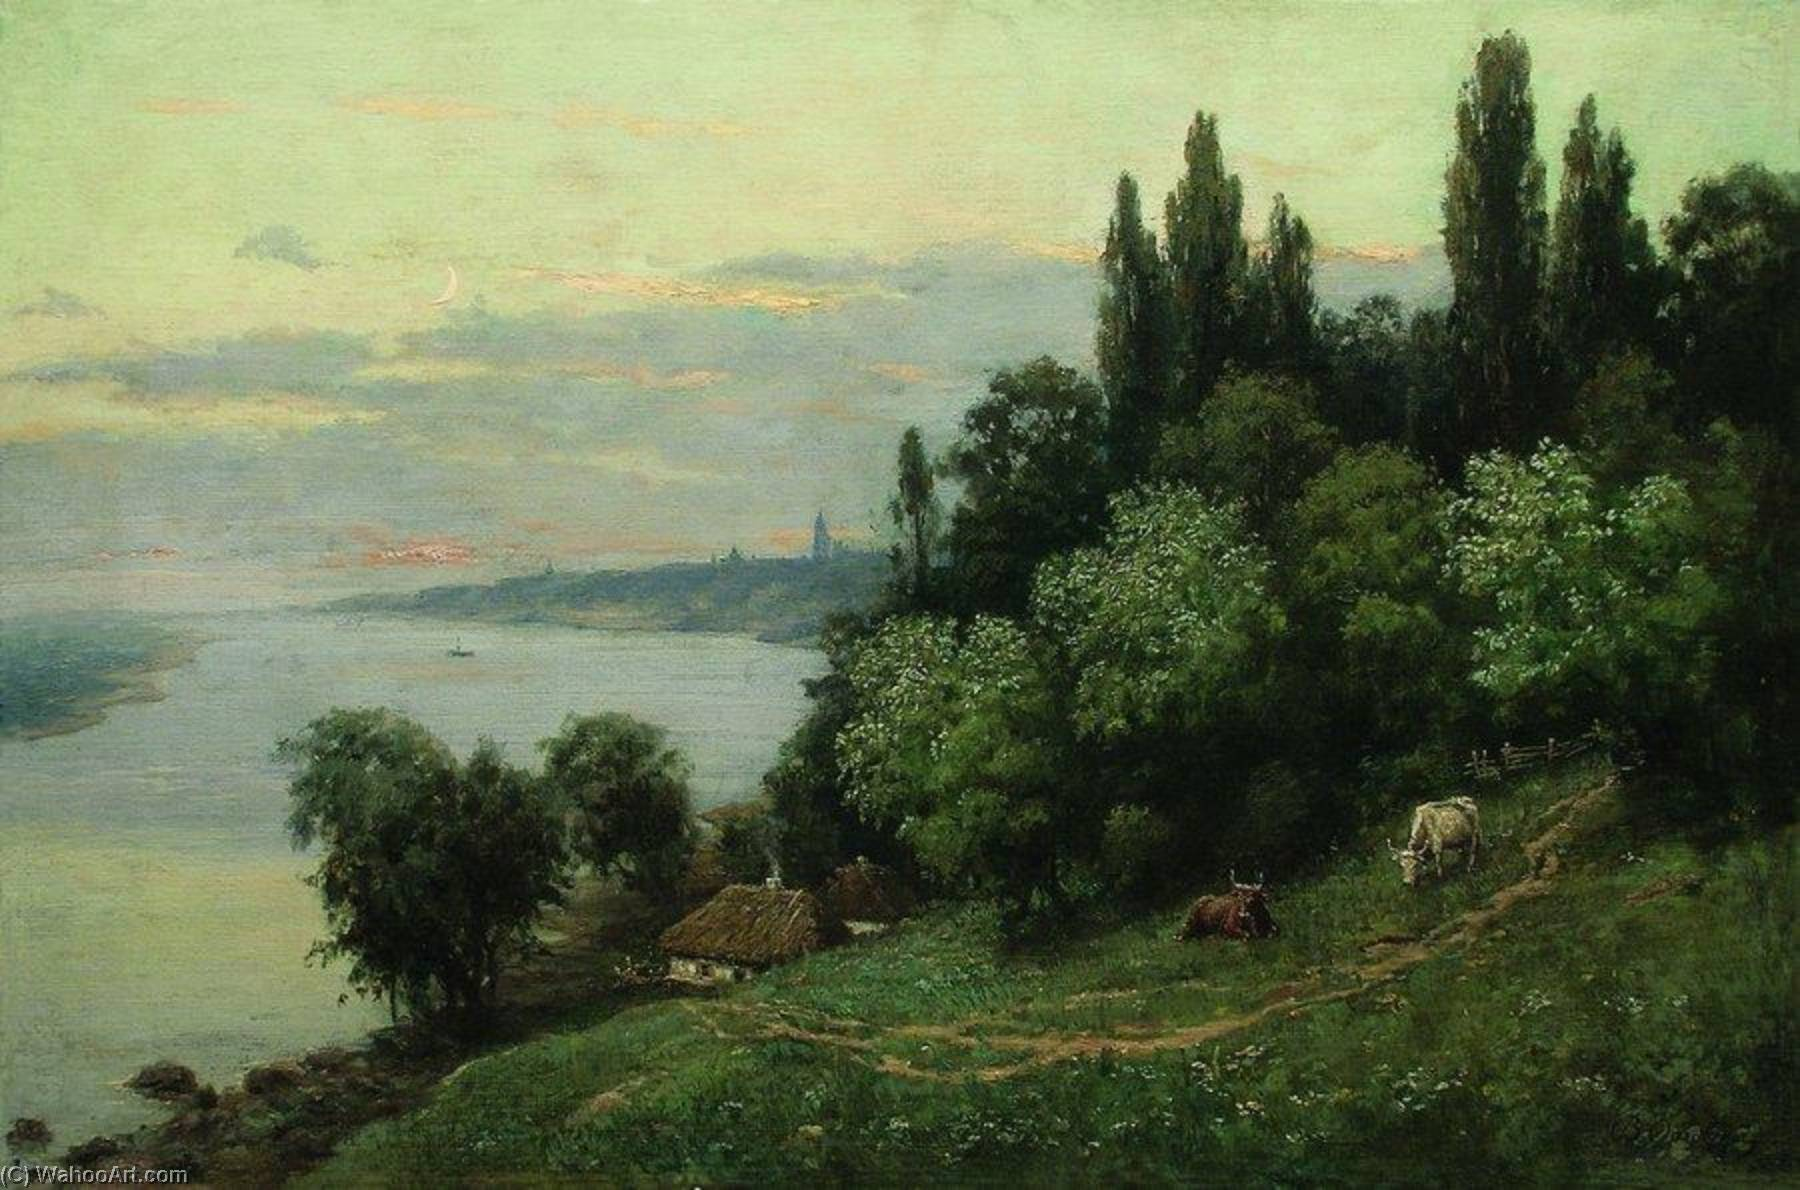 Evening on the River, 1890 by Vladimir Orlovsky | Museum Art Reproductions Vladimir Orlovsky | WahooArt.com